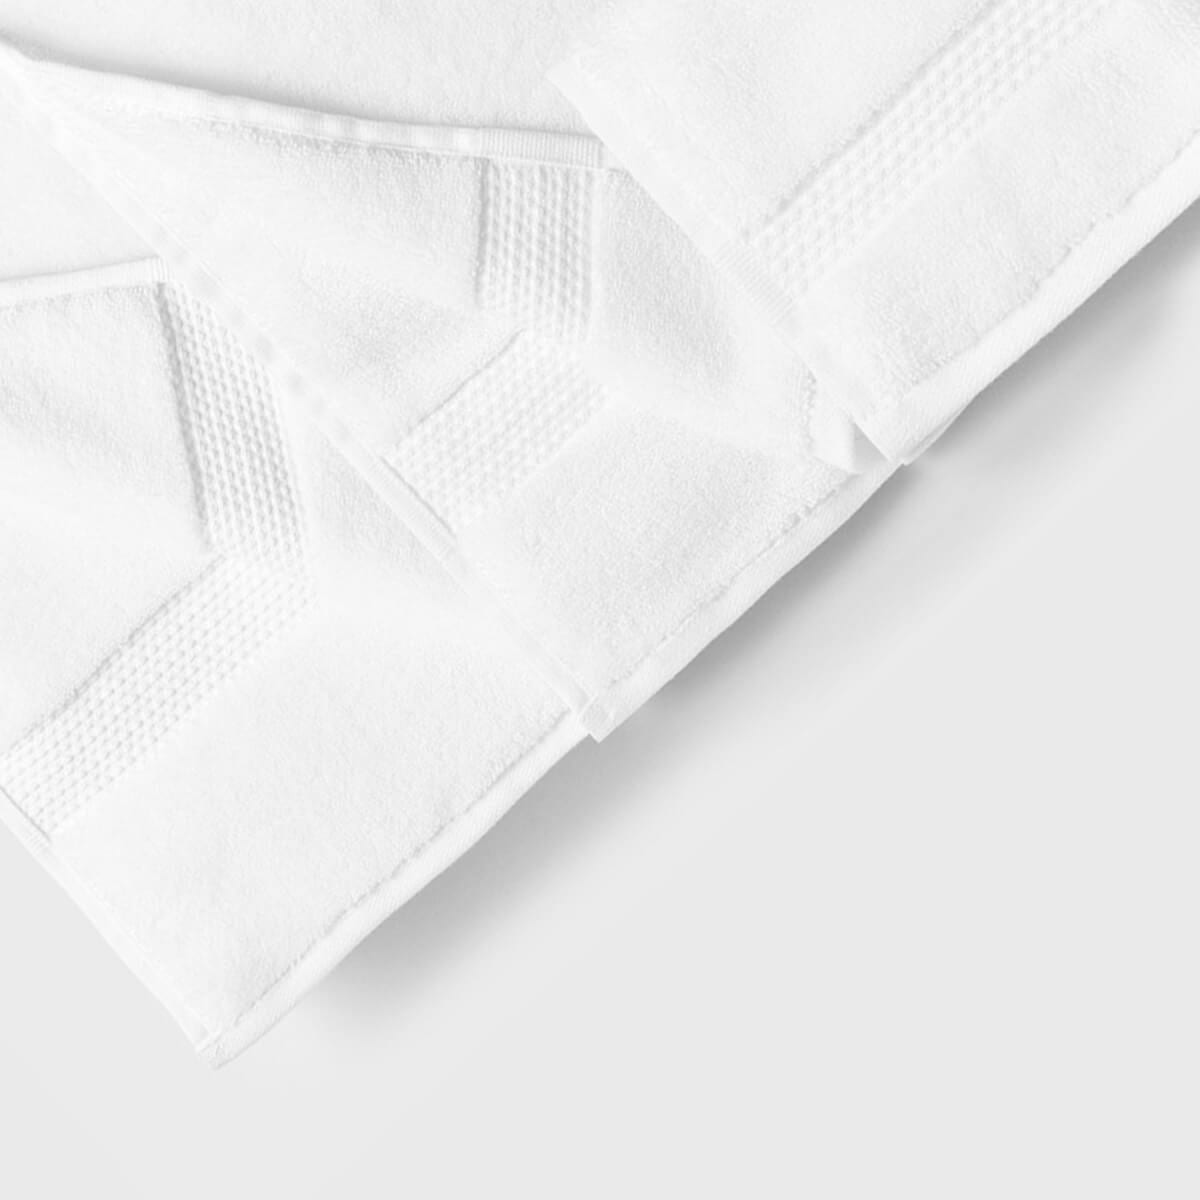 How to Fold Towels: 5 Easy-to-Learn Methods